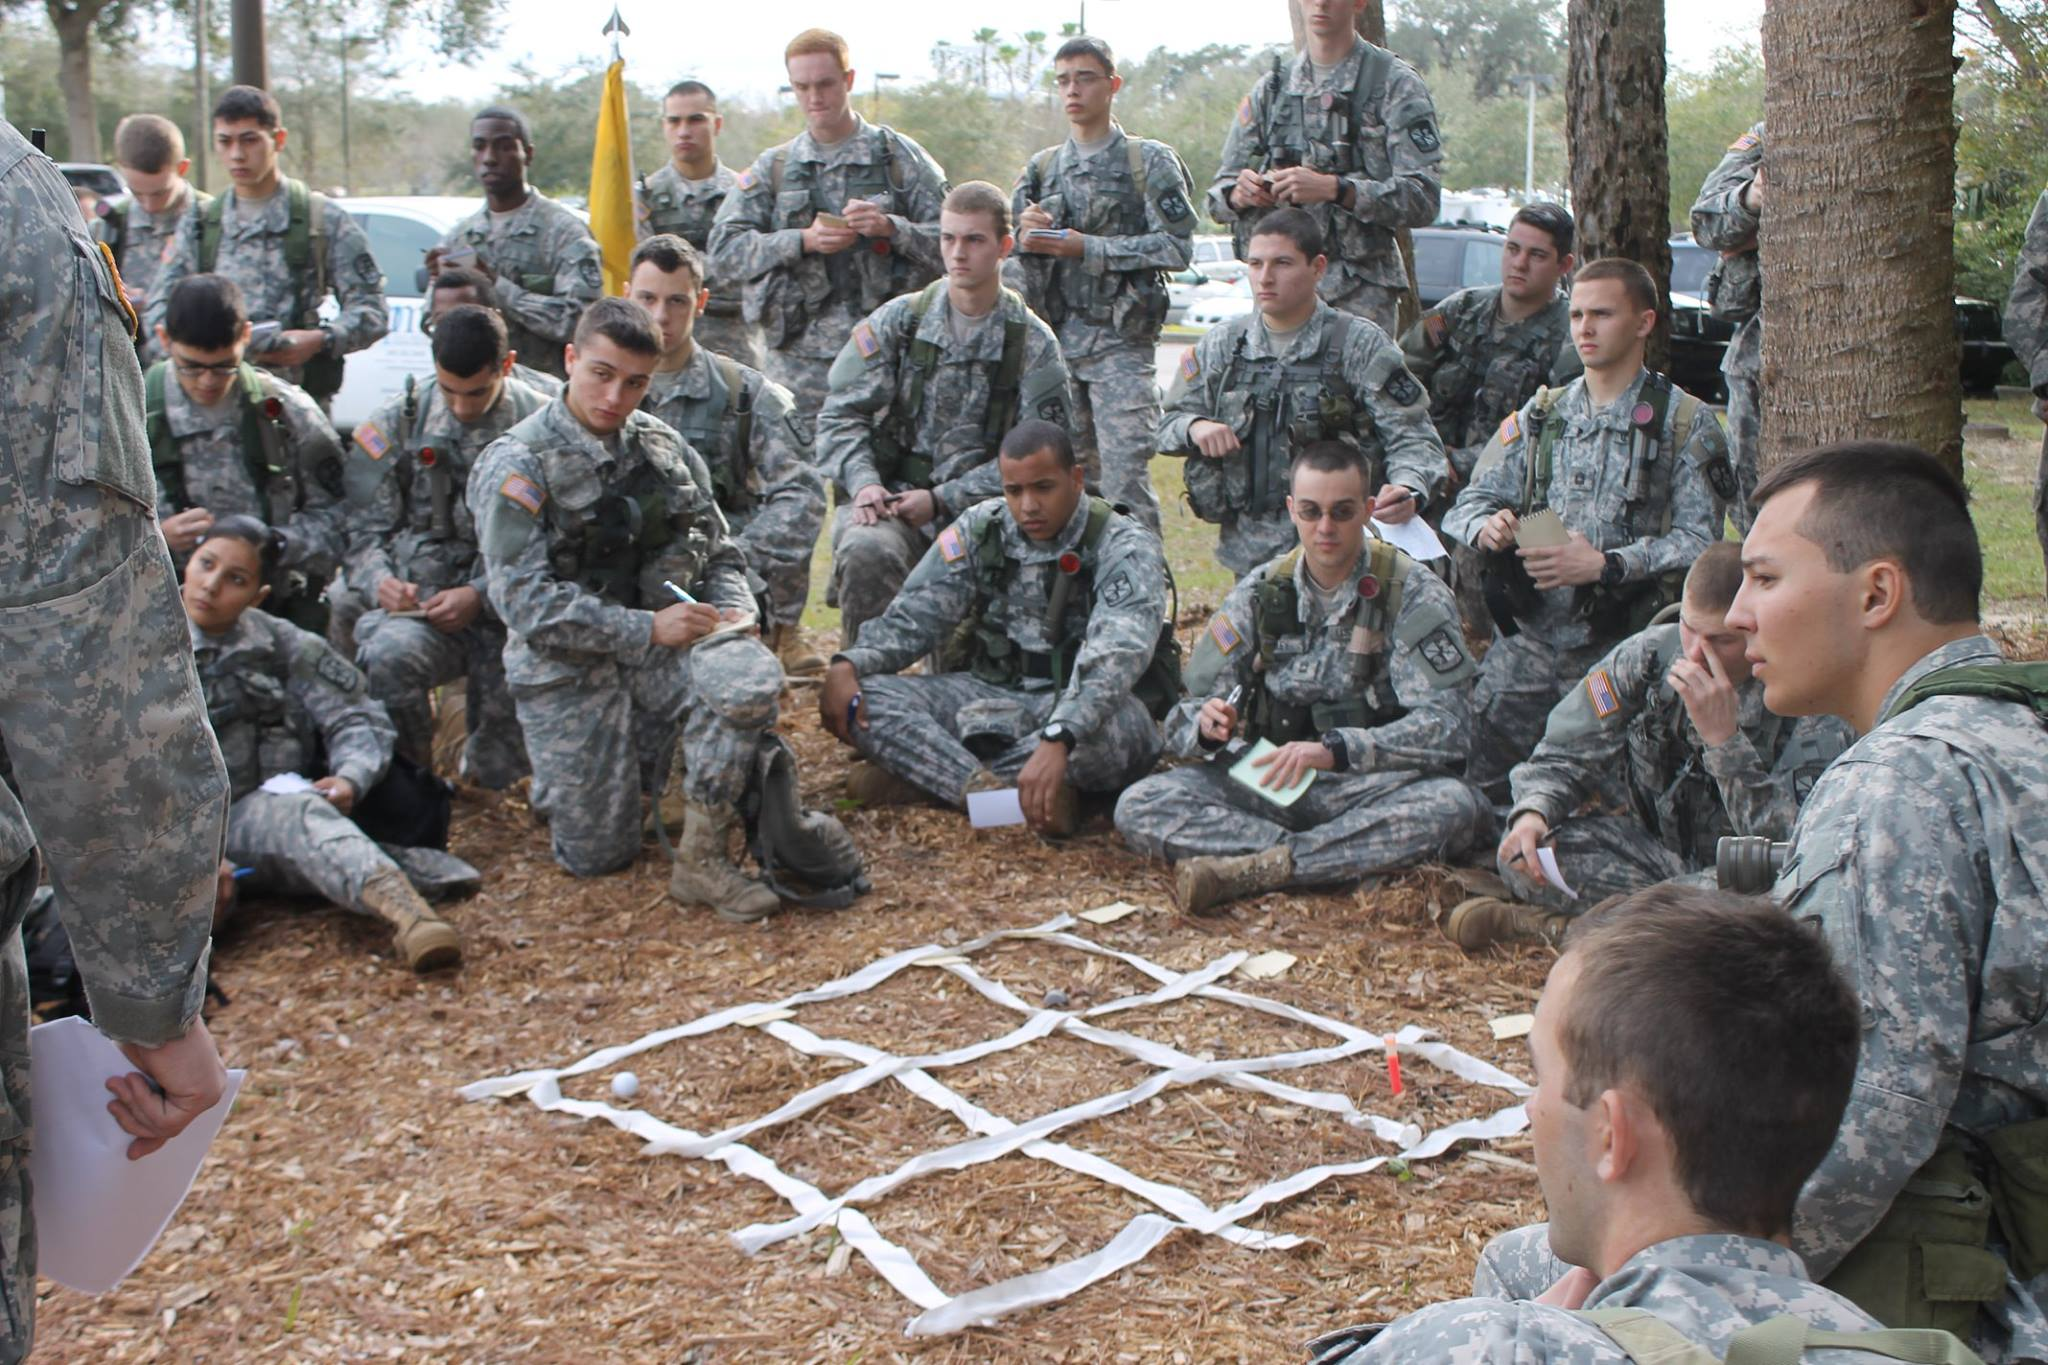 as part of army rotc youll be in the company of a diverse group of individuals with broad interests who excelled in their chosen areas of interest